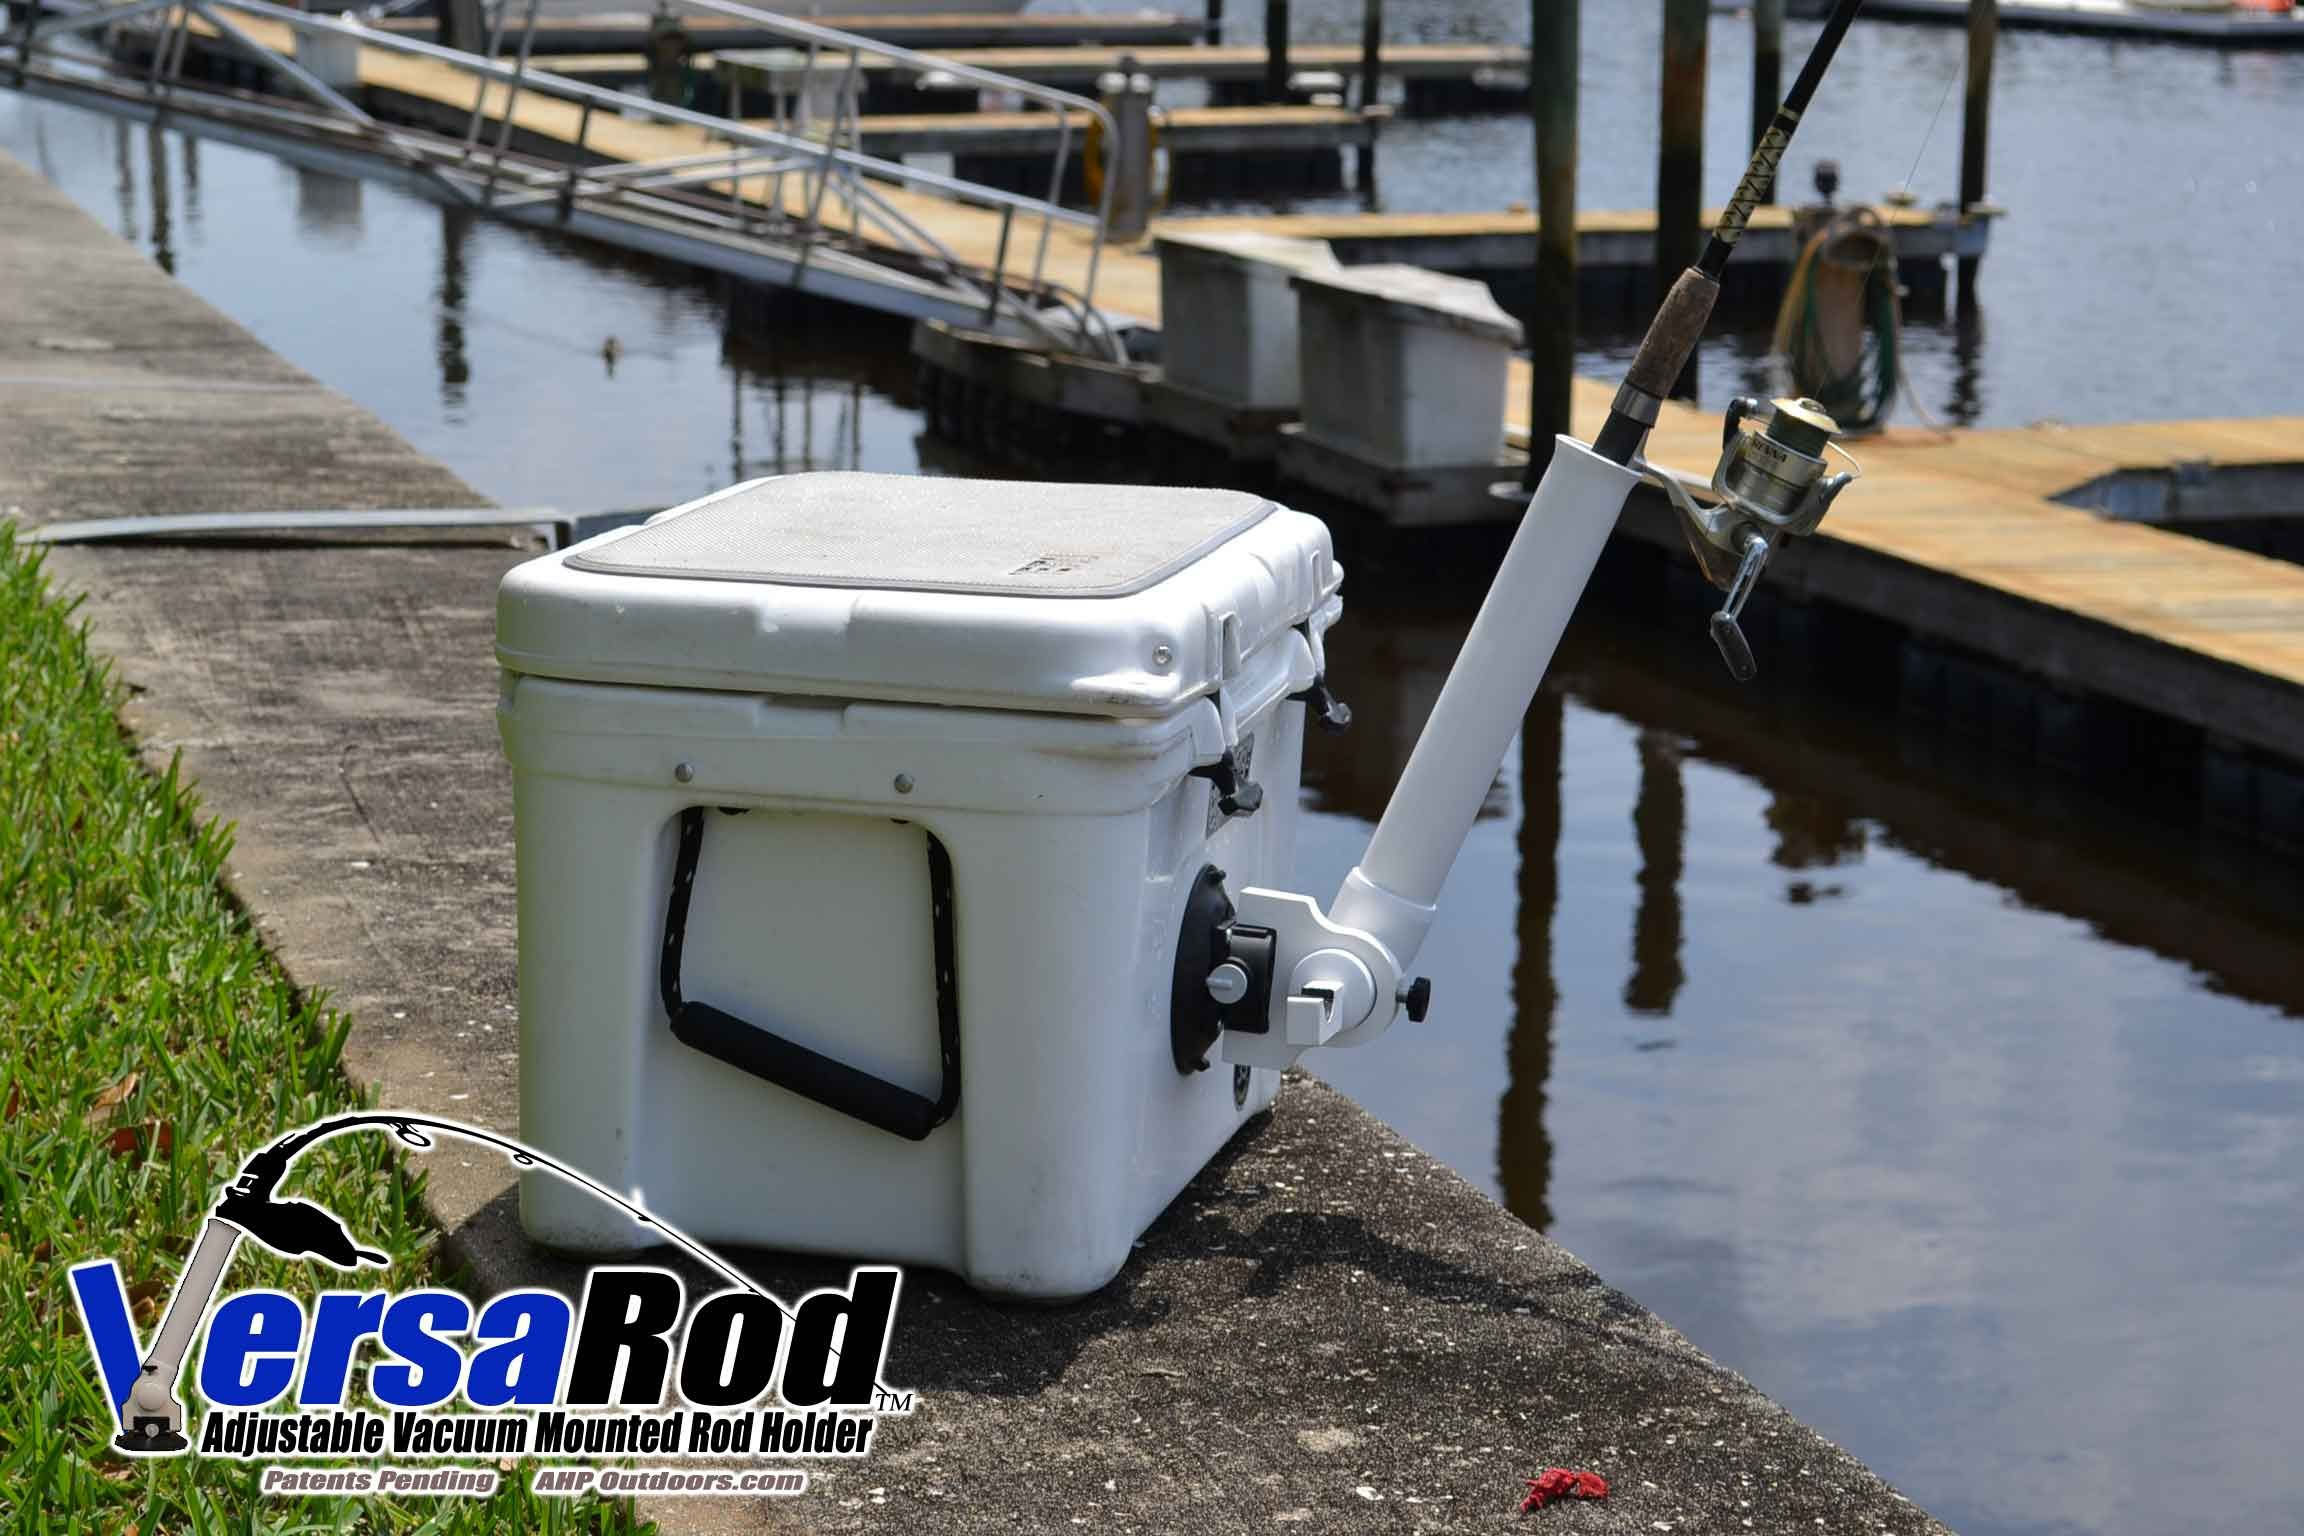 Versa rod vacuum mounted rod holder on a yeti cooler it for Boat fishing rod holders